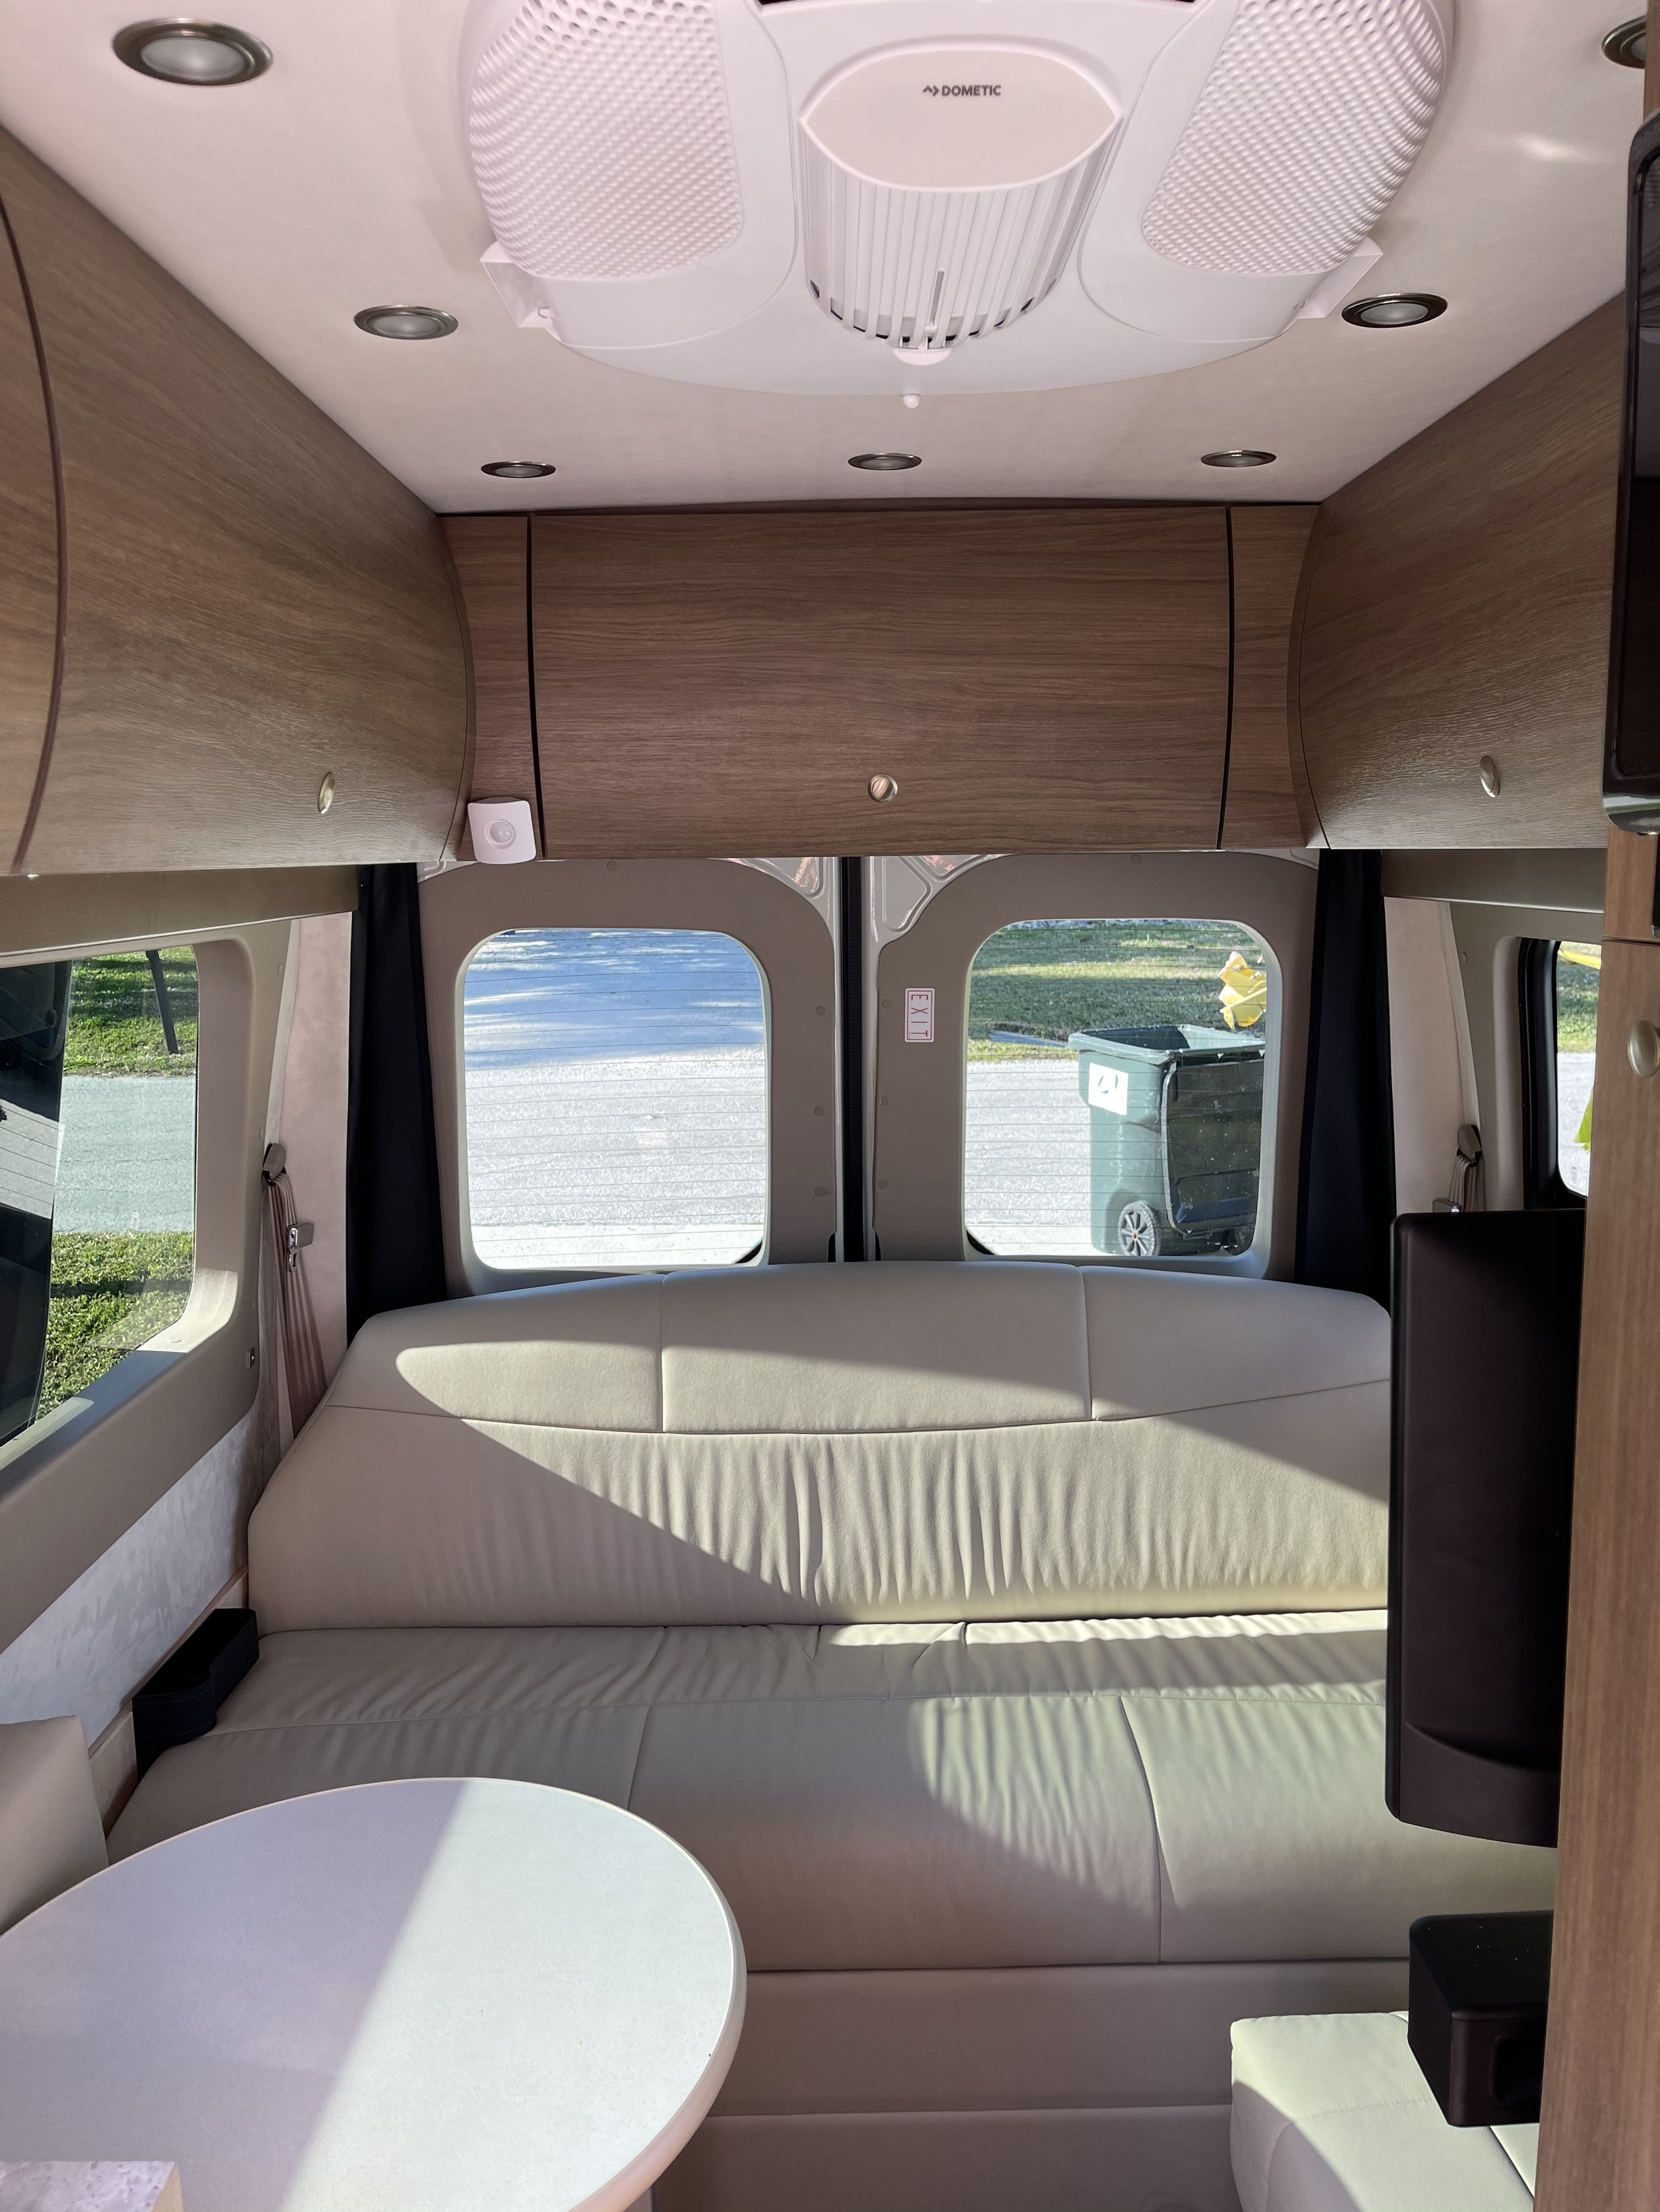 Back comfy memory foam couch area converts to the bed. Two seatbelts and swivel dining table. Overhead storage, small pantry on the right side.. Pleasure Way Ascent 2021